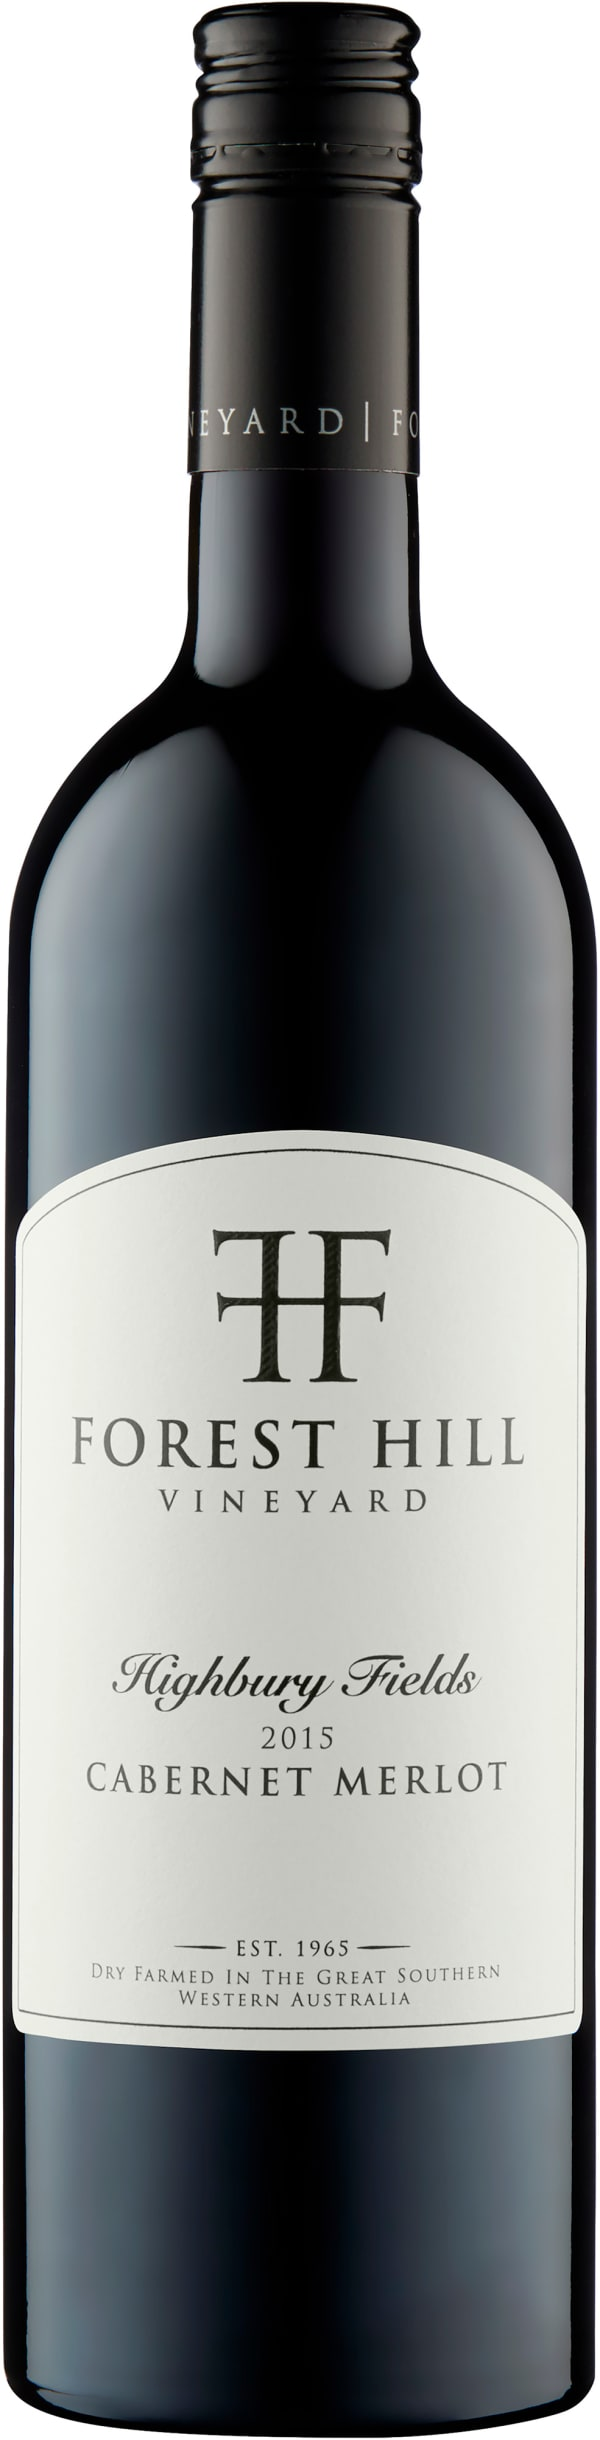 Forest Hill Highbury Fields Cabernet Merlot 2015